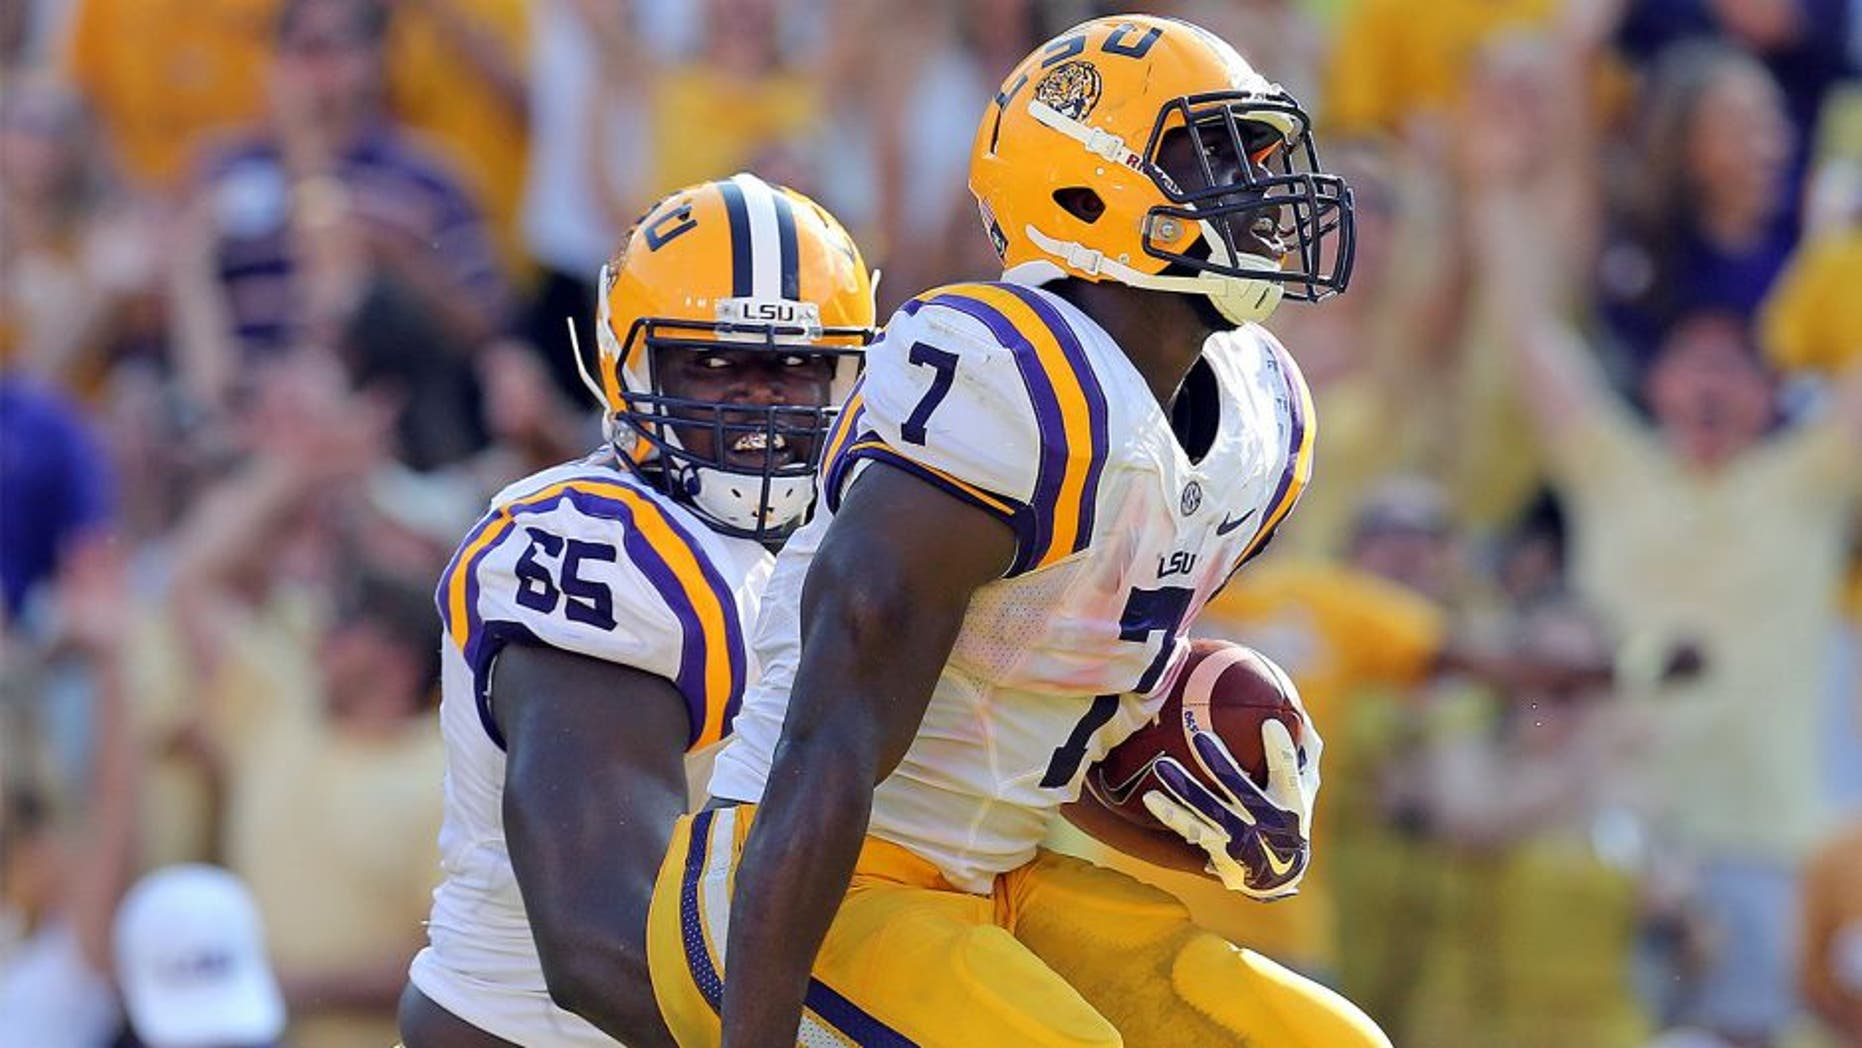 BATON ROUGE, LA - SEPTEMBER 19: Leonard Fournette #7 of the Louisiana State University Tigers runs for a touchdown against the Auburn University Tigers at Tiger Stadium on September 19, 2015 in Baton Rouge, Louisiana. The LSU Tigers the Auburn Tigers 45-21. (Photo by Layne Murdoch/Getty Images)